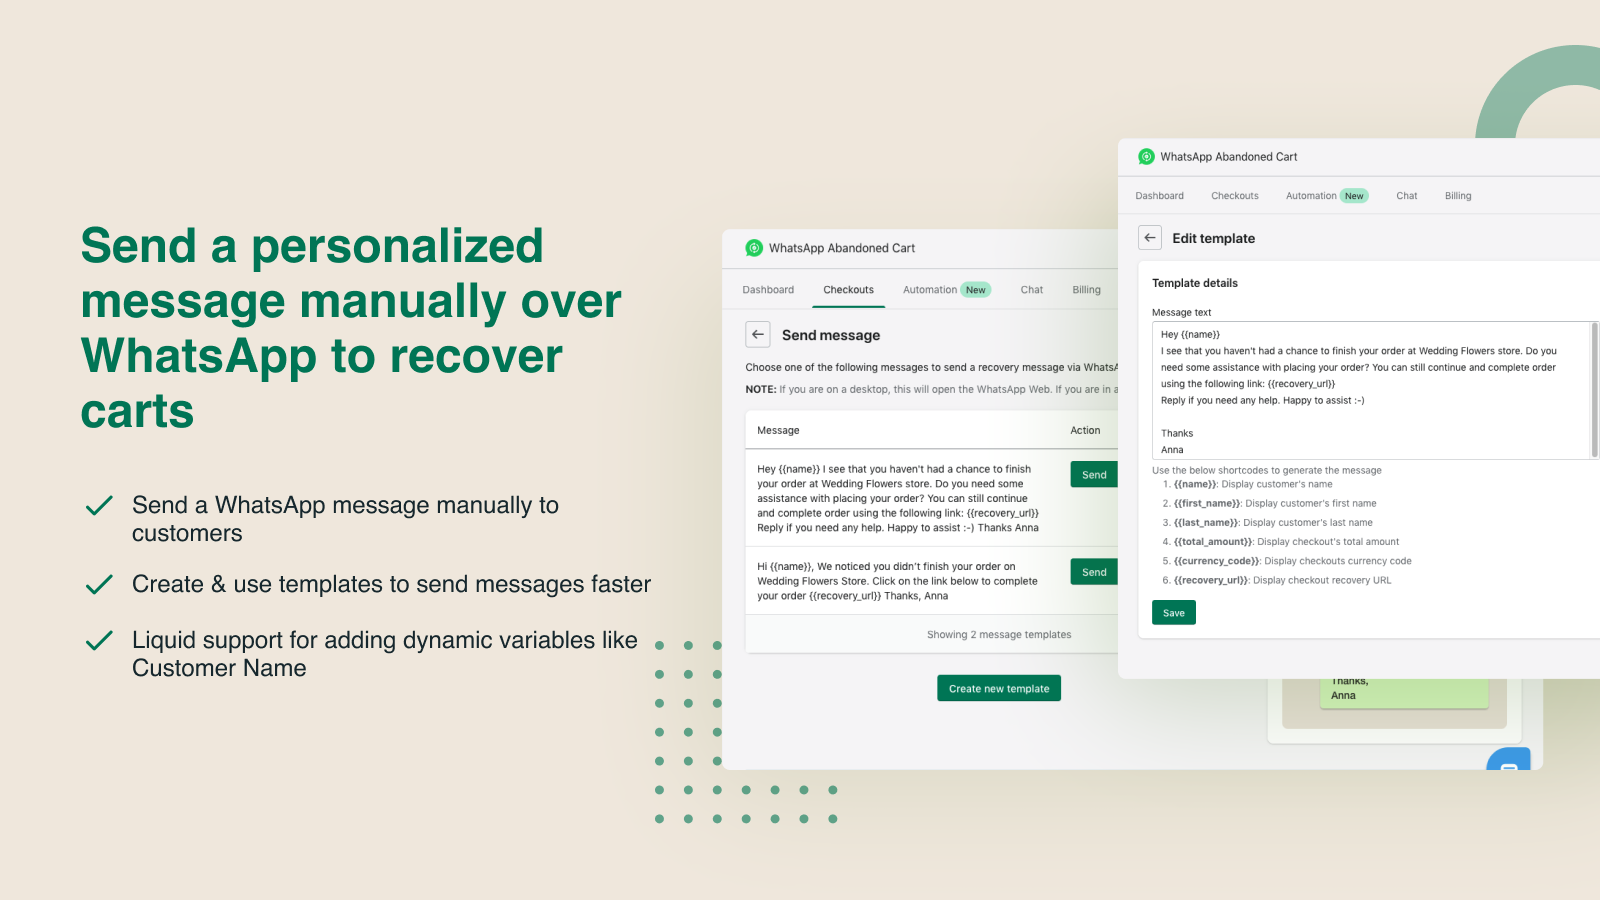 Send personalised WhatsApp messages to recover carts manually